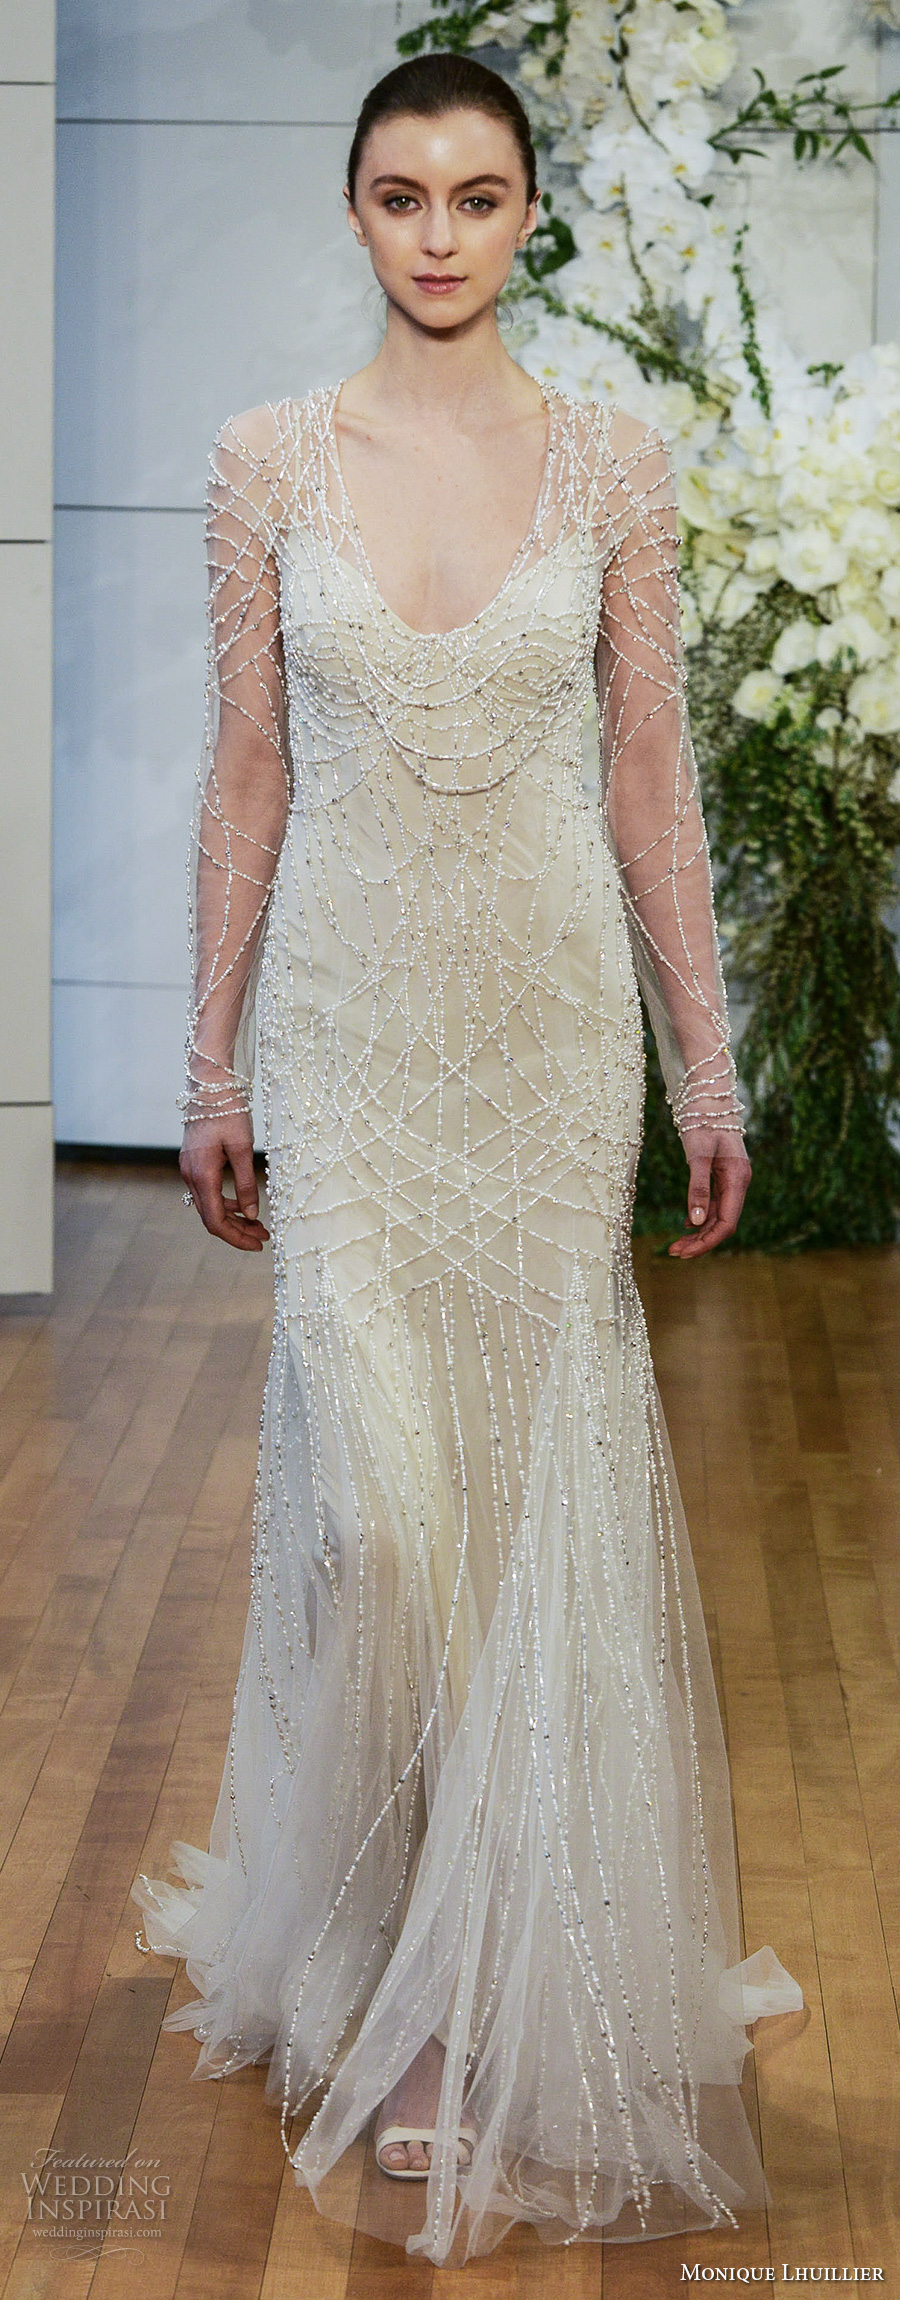 monique lhuillier spring 2018 bridal long sleeves spagetti strap scoop neckline full embellishment beaded elegant glamorous column wedding dress covered beaded back chapel train (samathan) mv